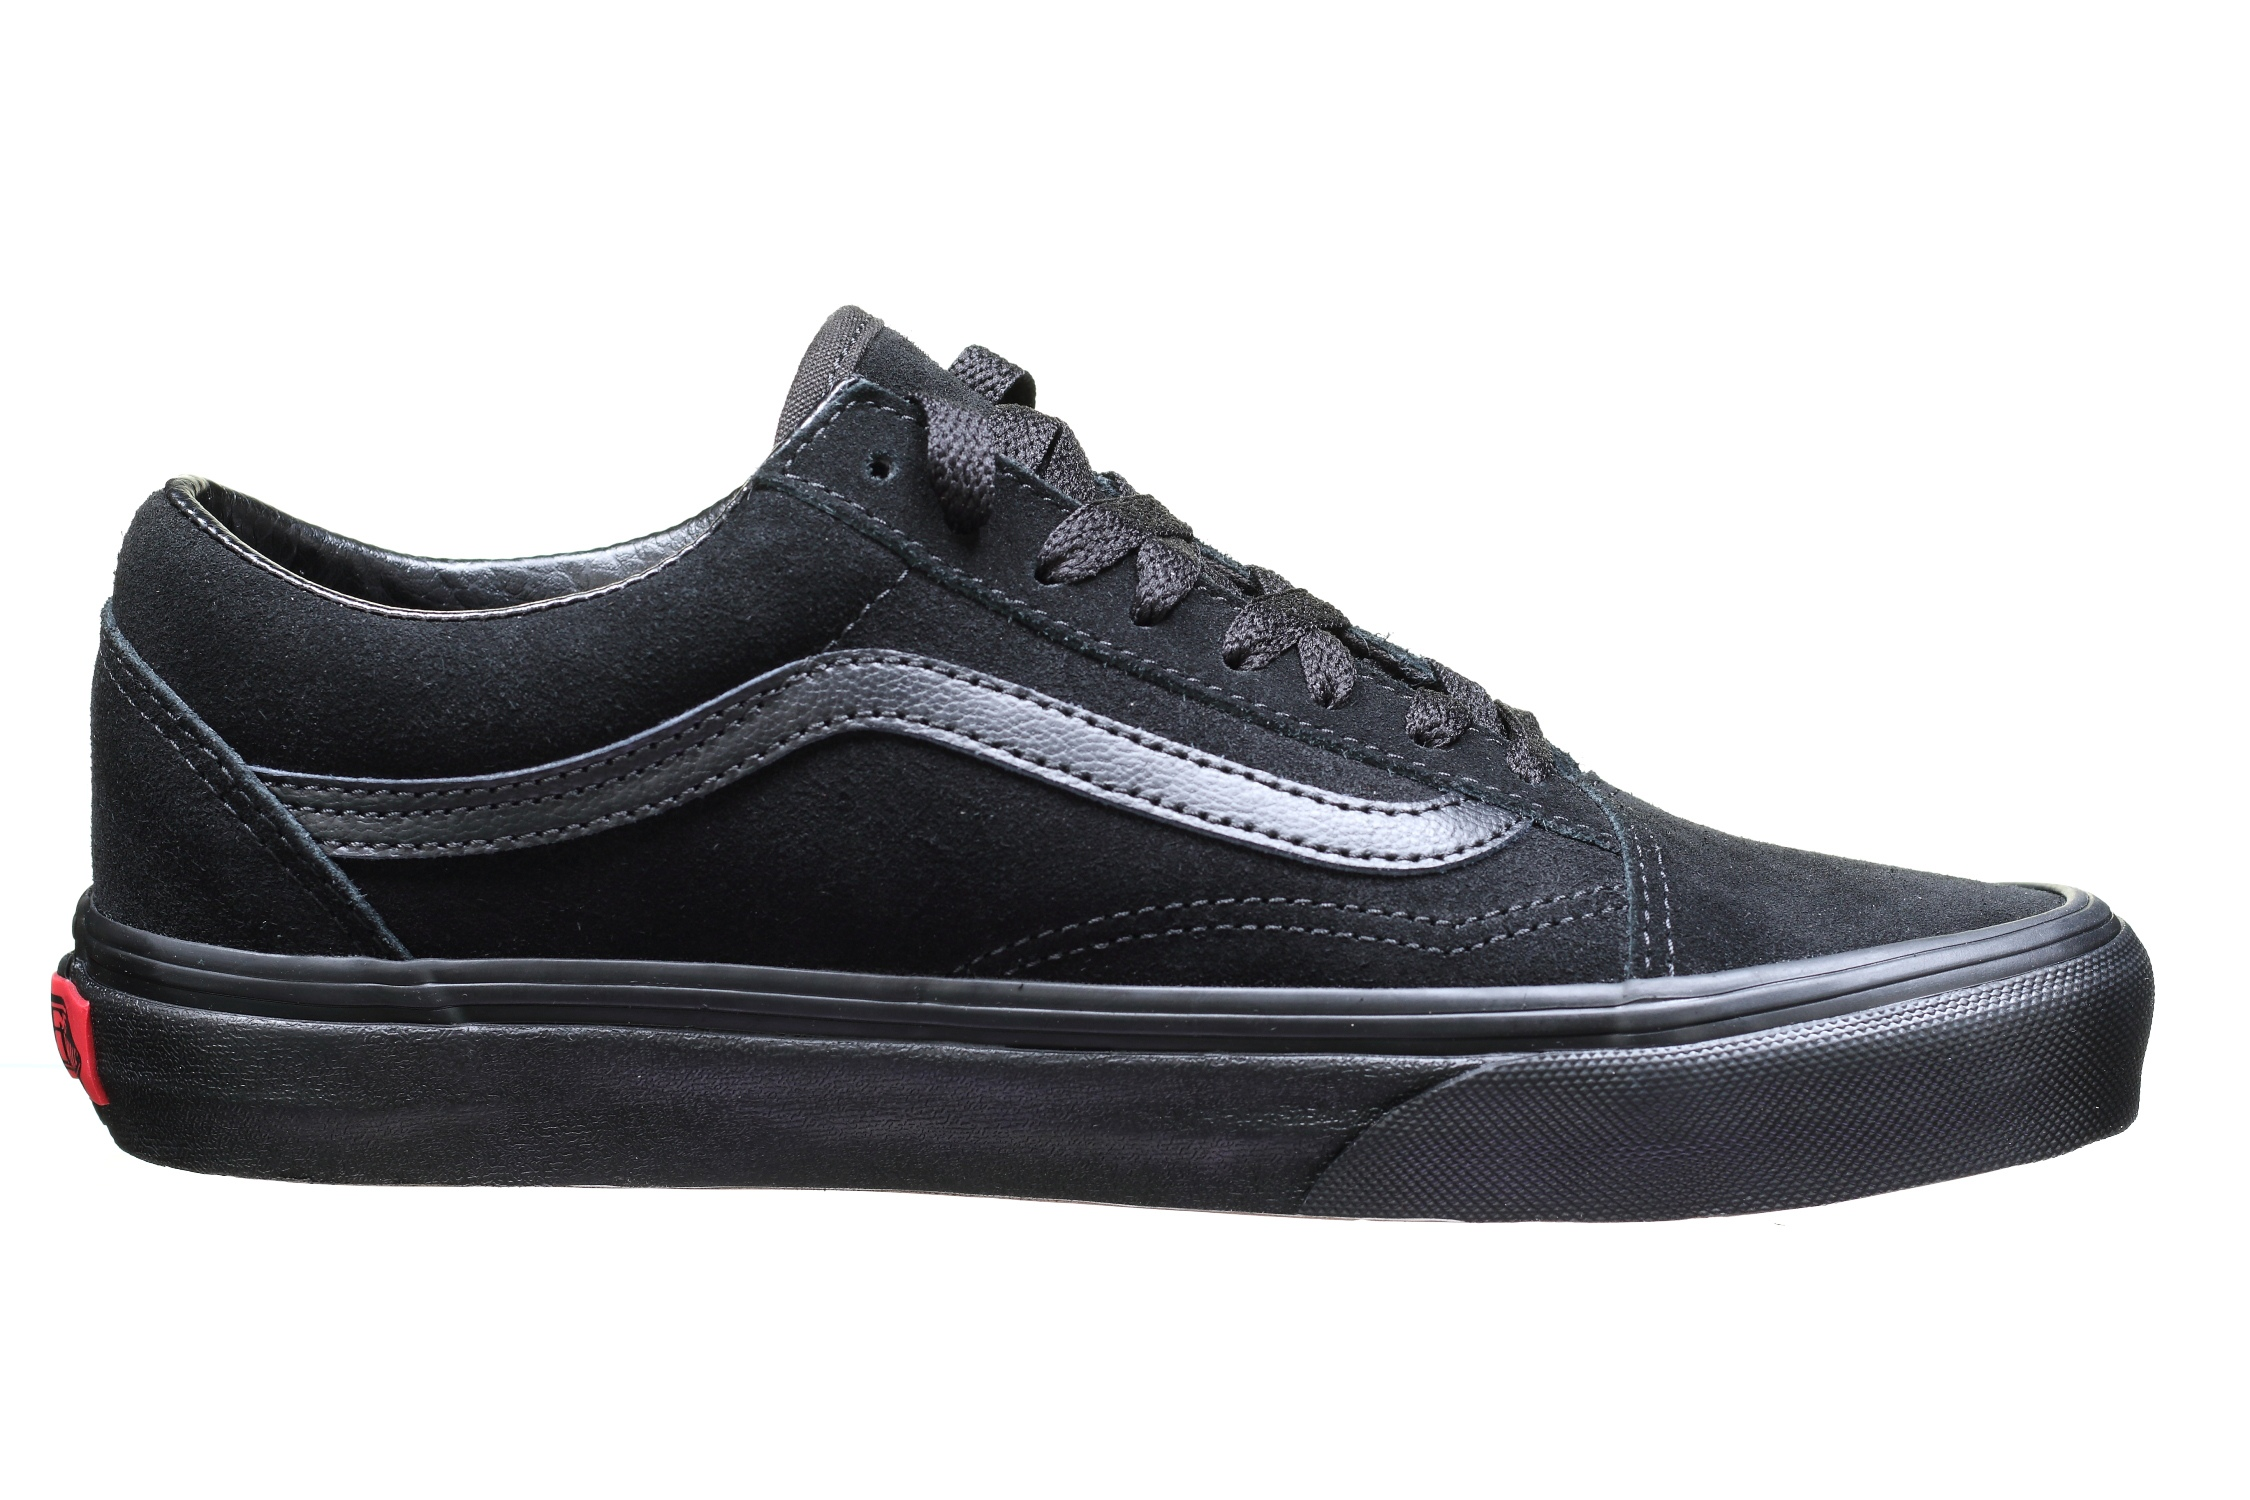 https://www.leadermode.com/154192/vans-old-skool-suede-v8g1nri-black-black.jpg